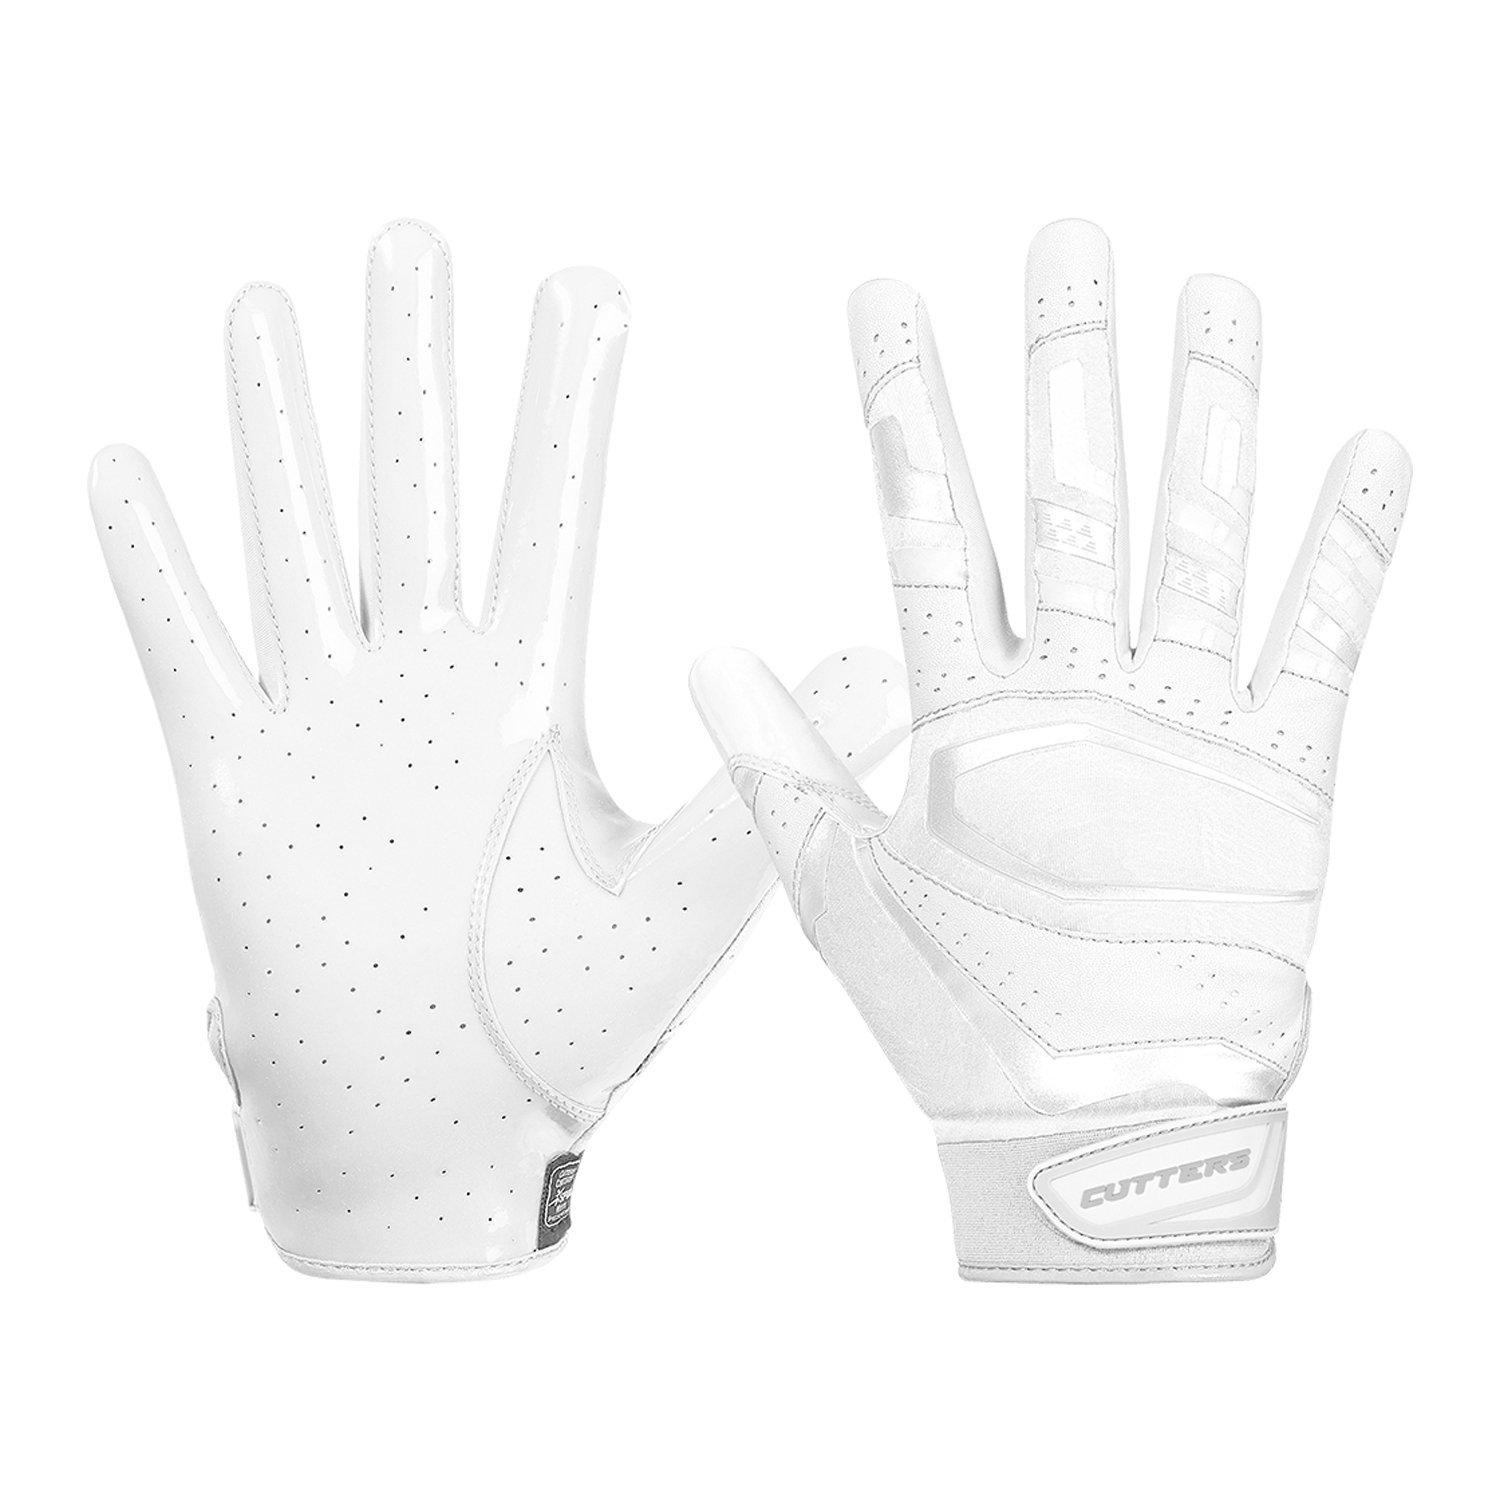 Cutters Gloves, Solid White, Large